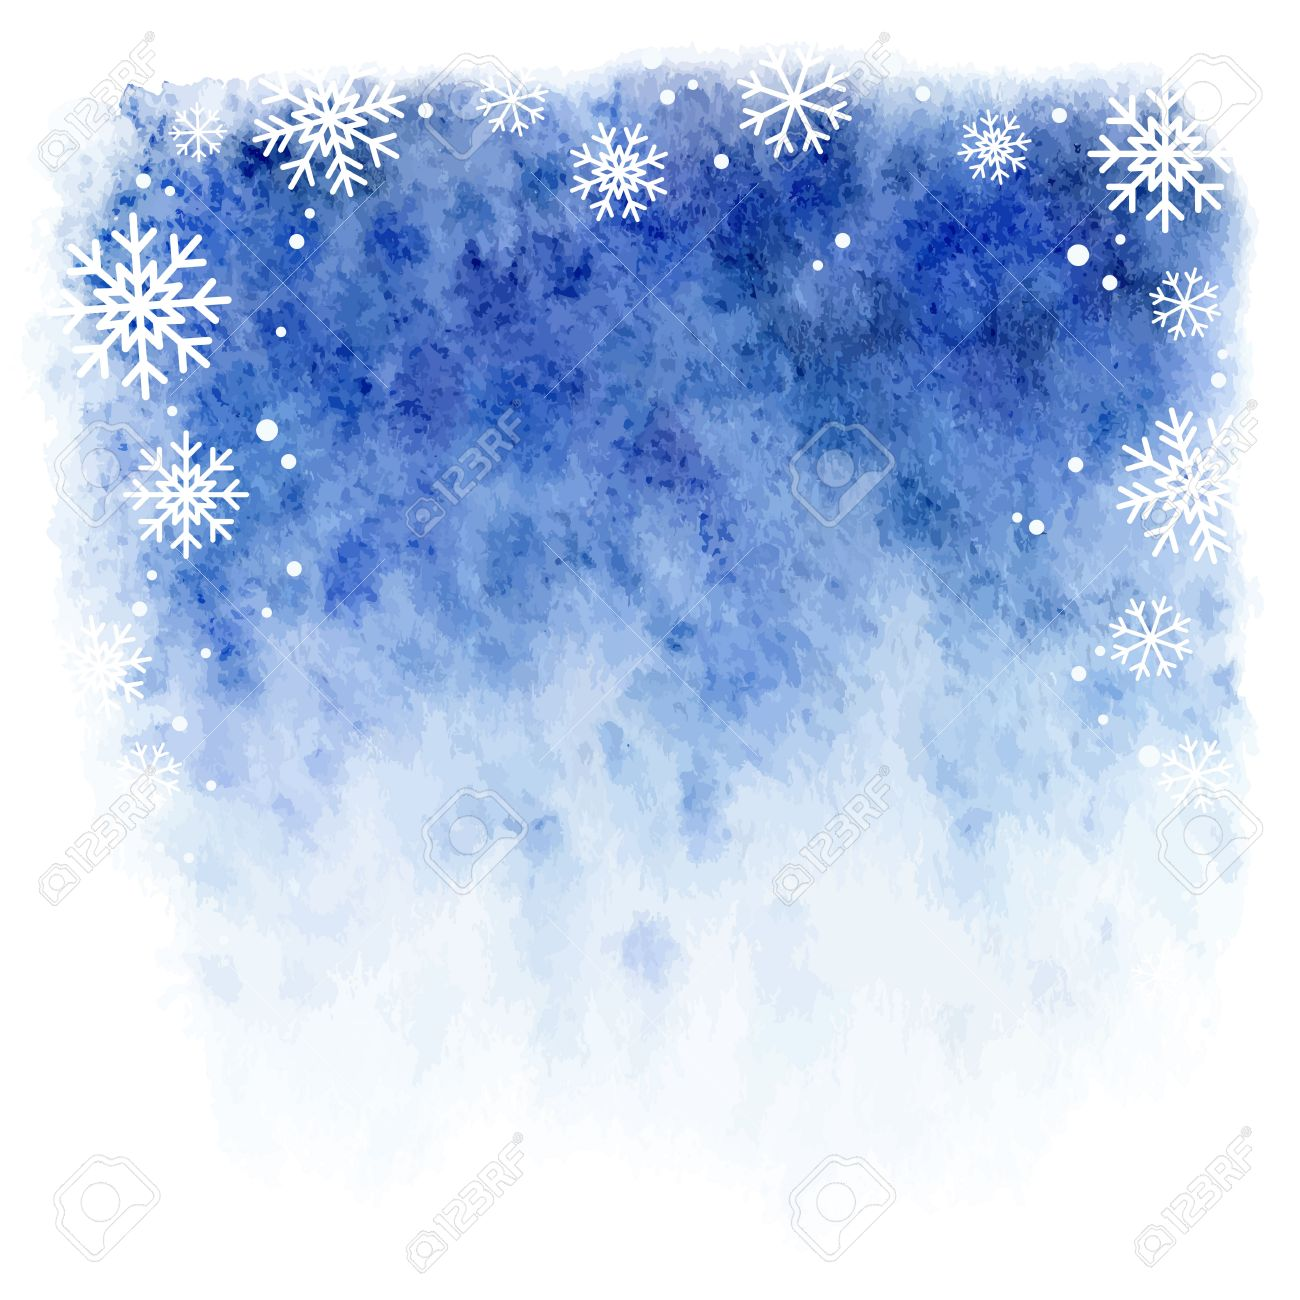 winter watercolor background. Blue sky with falling snowflakes - 32086691